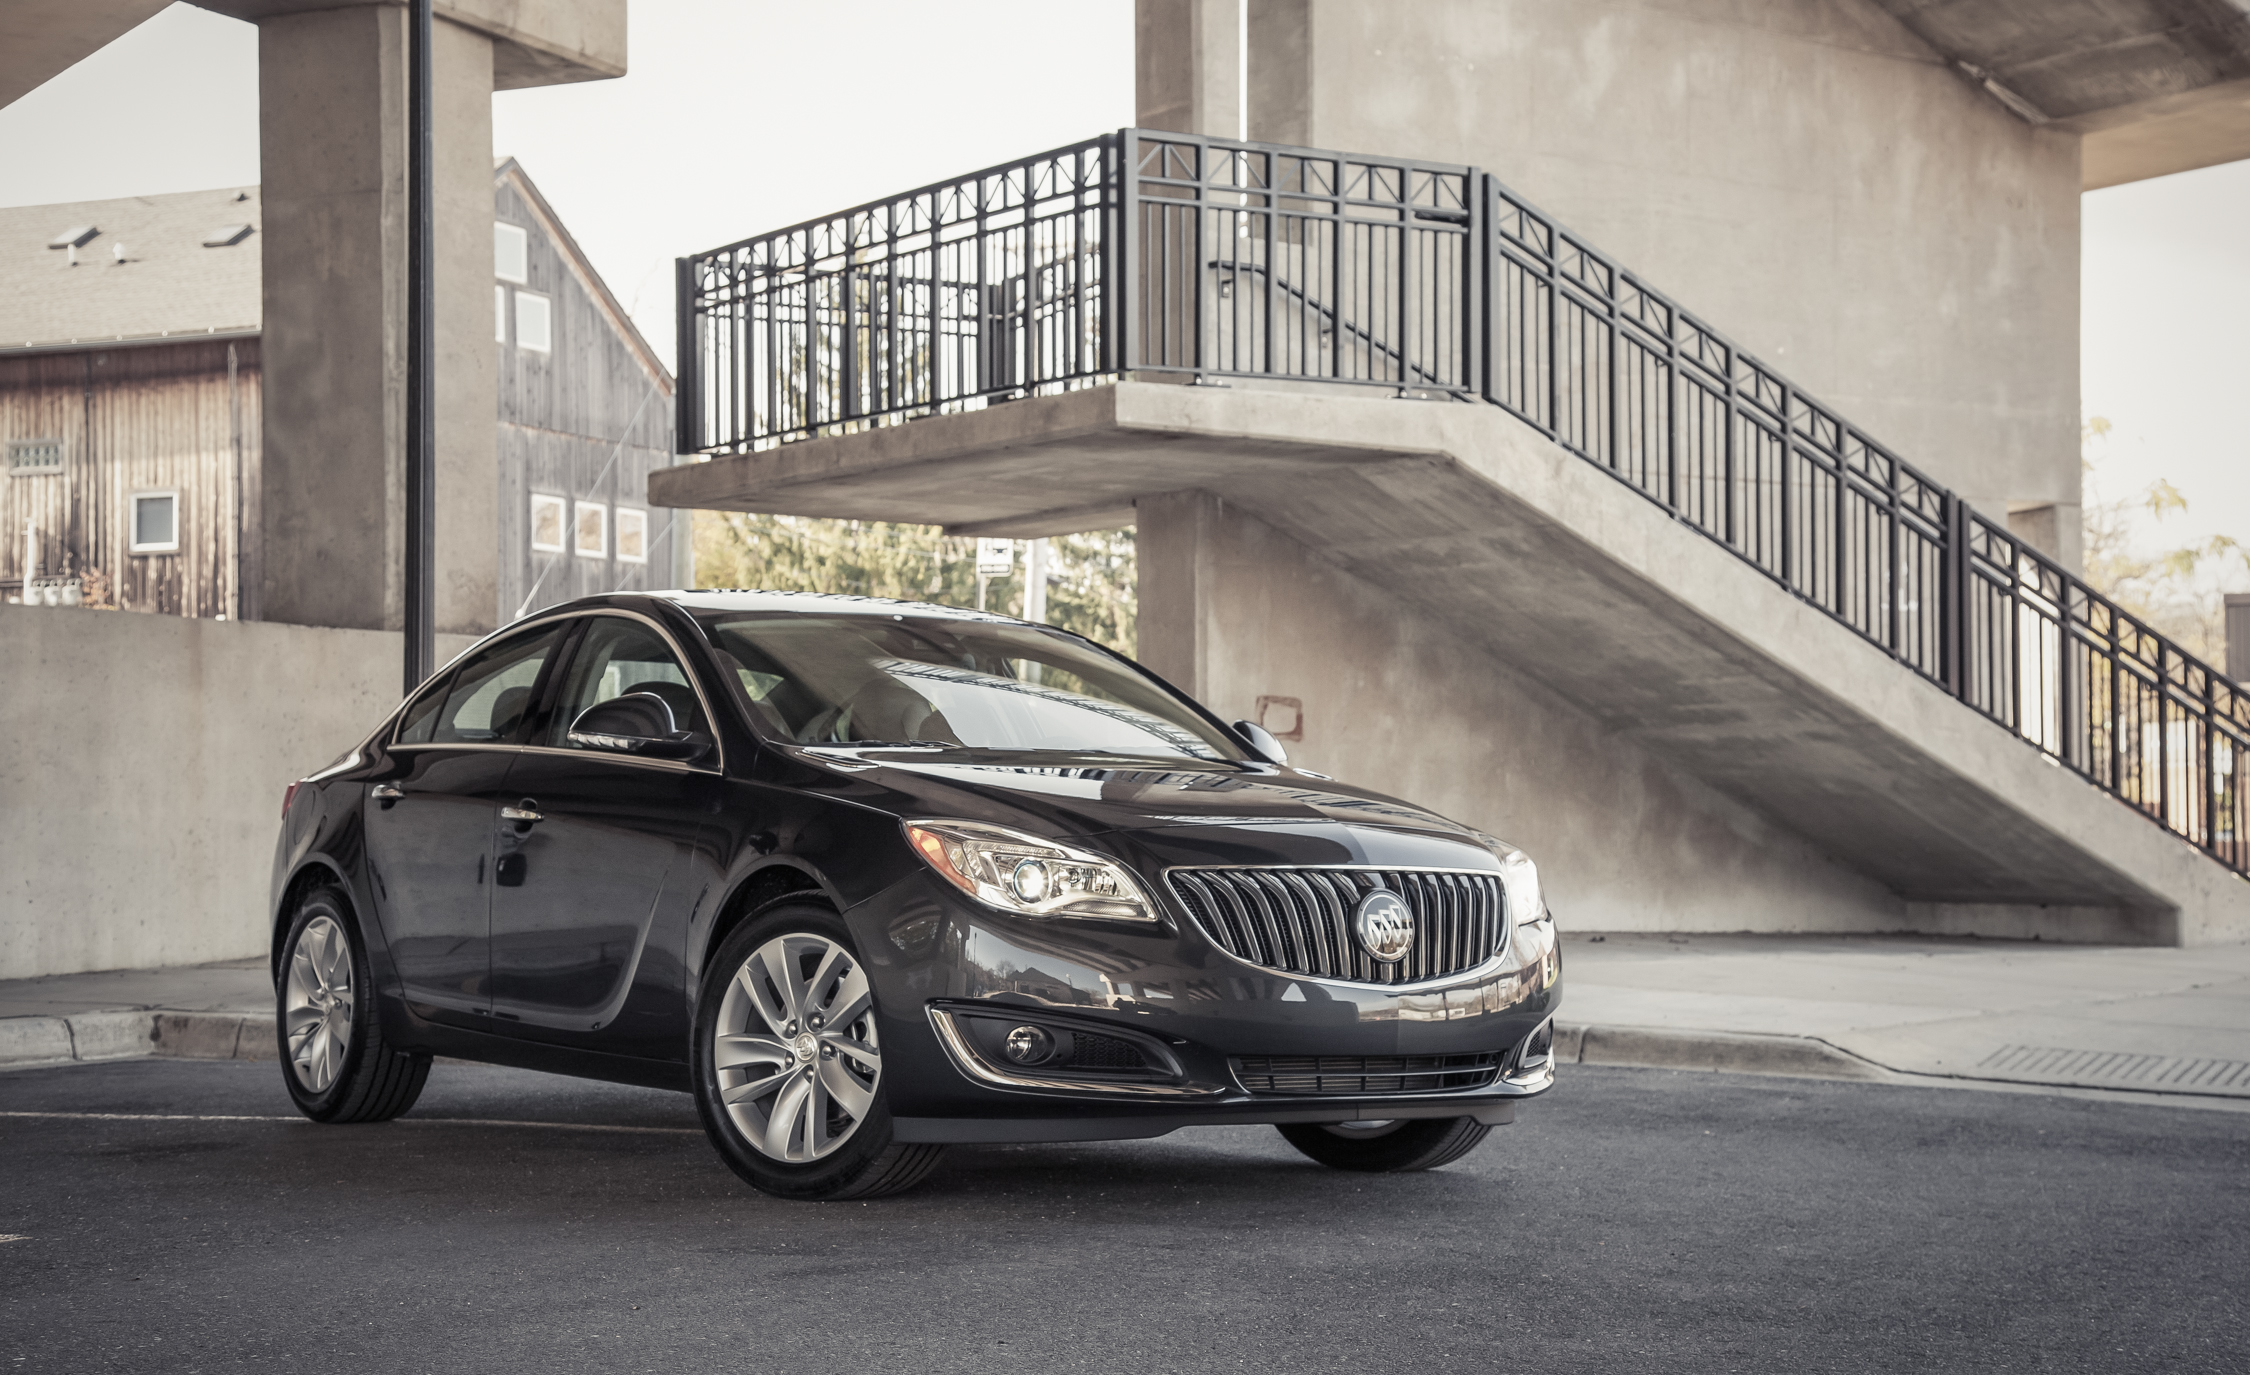 2014 Buick Regal Turbo (Photo 22 of 30)